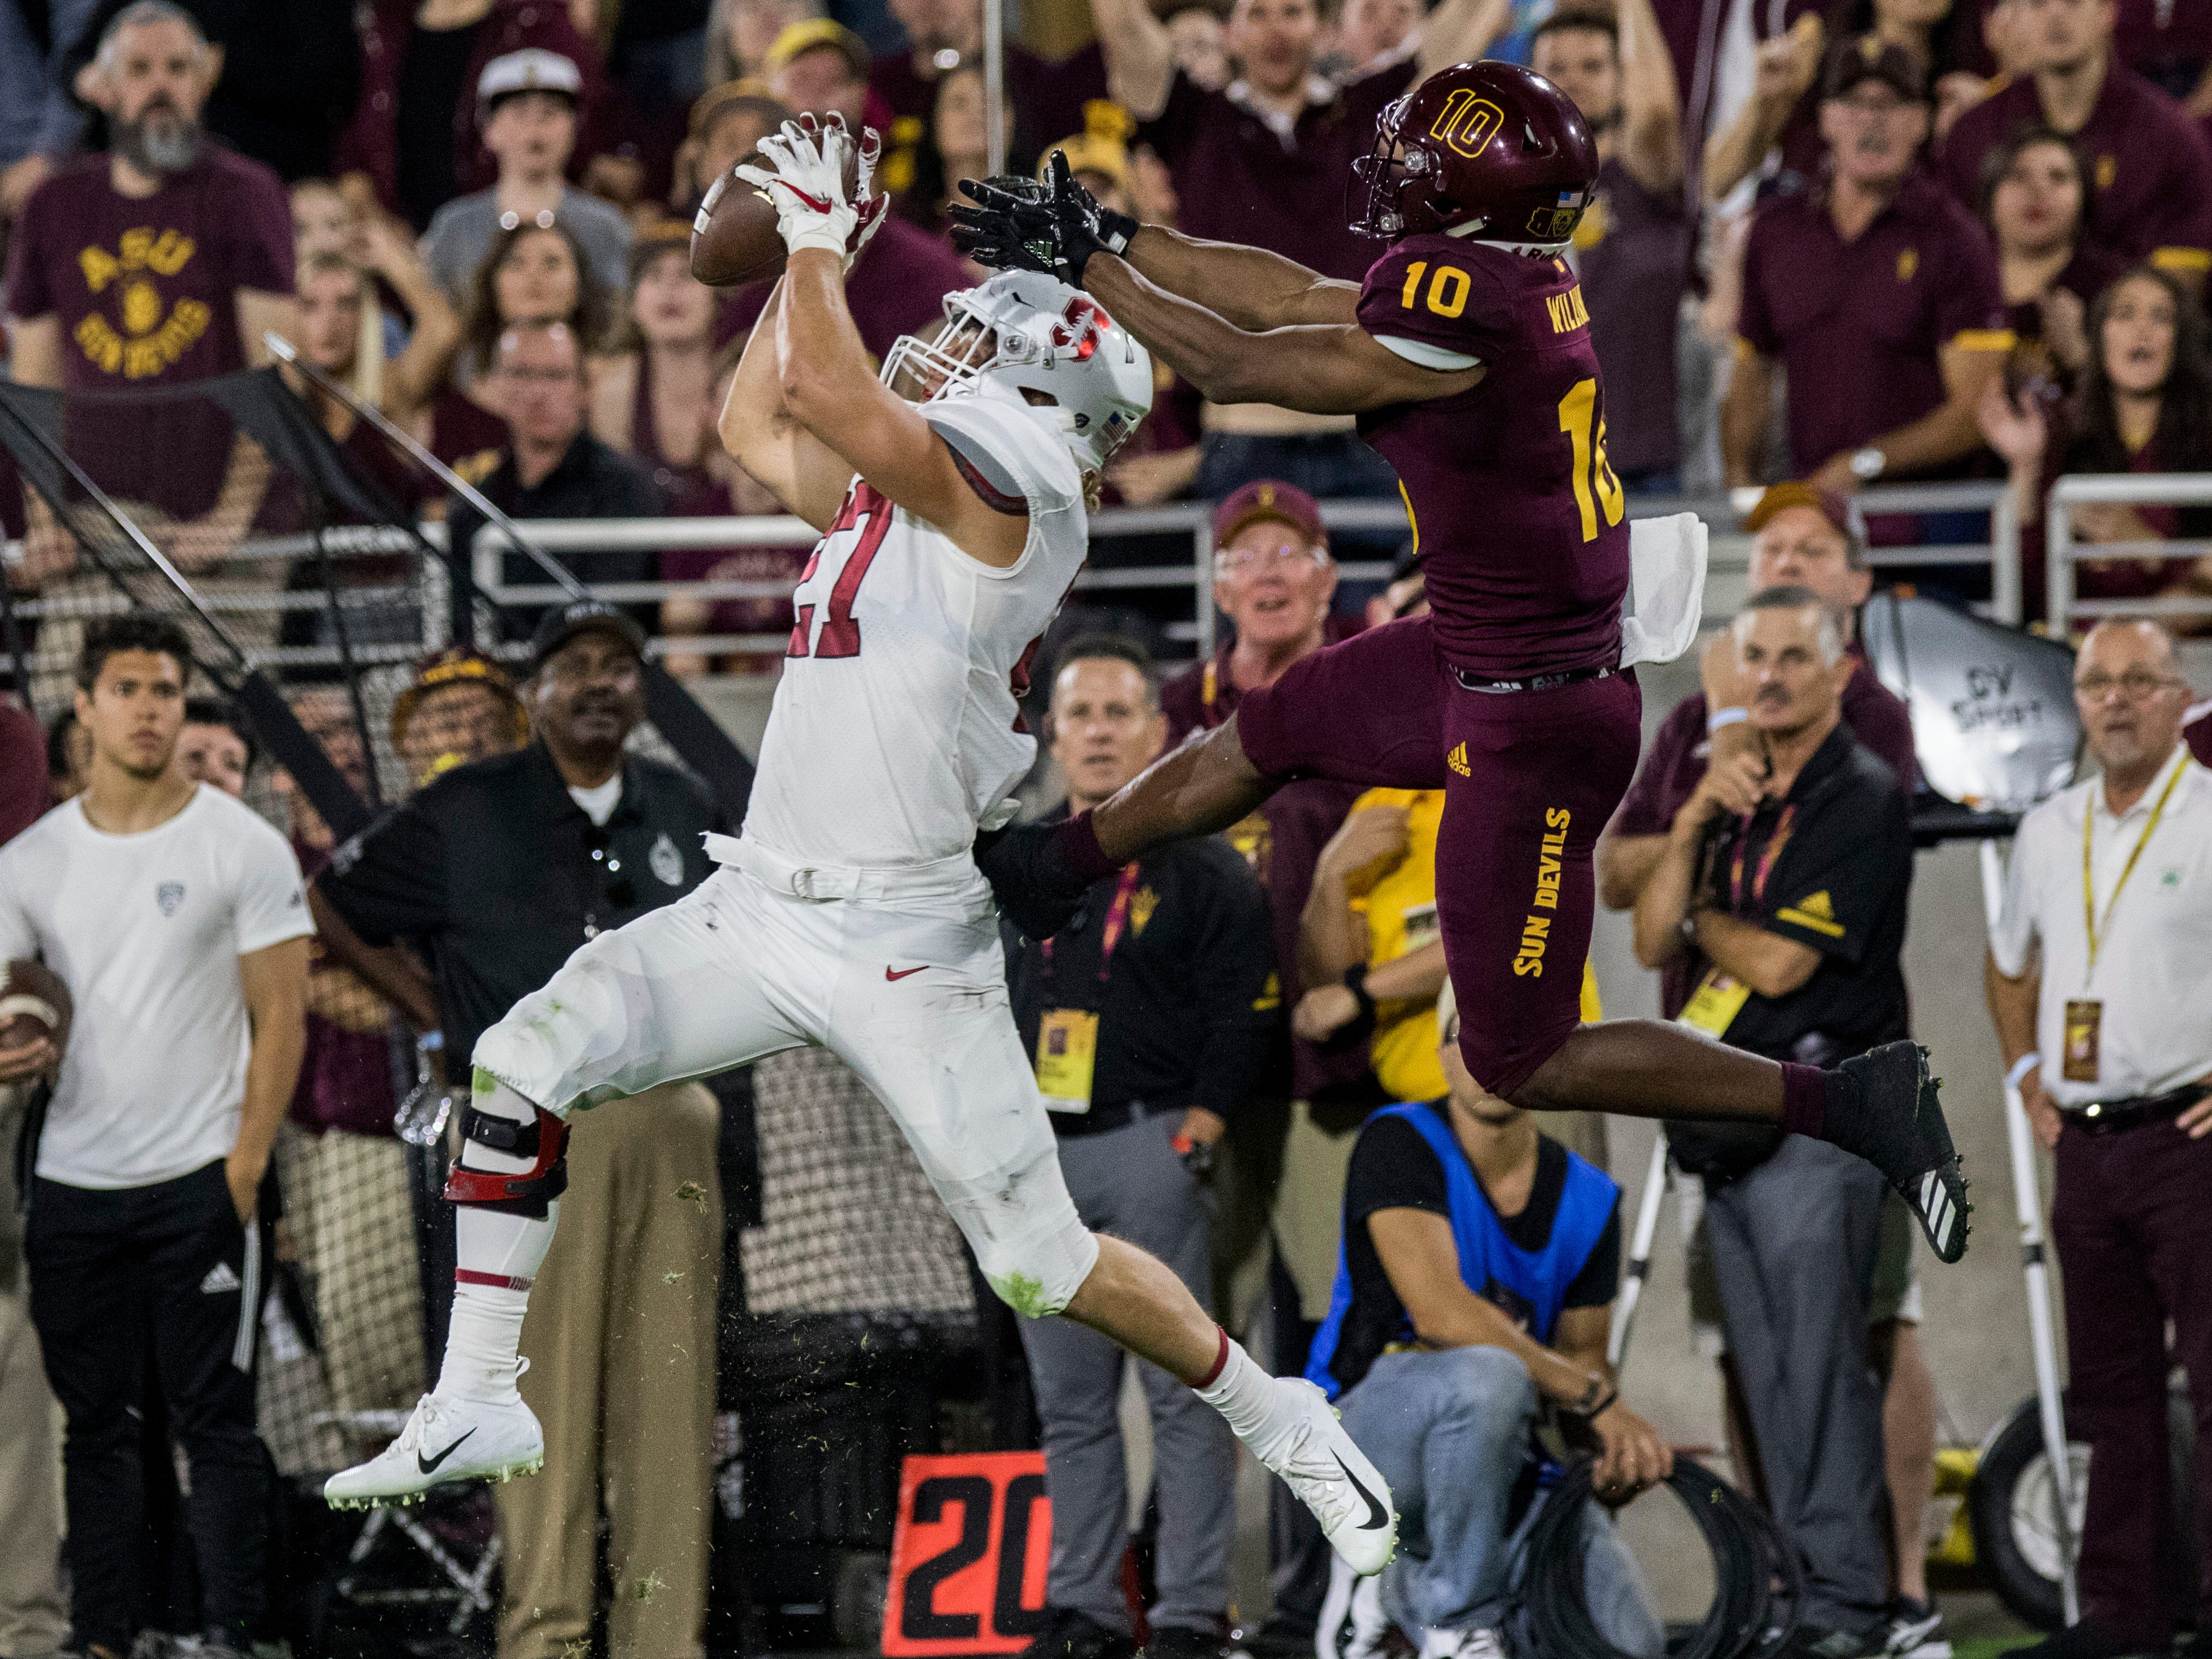 Stanford's Sean Barton intercepts a pass intended for Arizona State's Kyle Williams during the first half of an NCAA college football game Thursday, Oct. 18, 2018, in Tempe, Ariz.